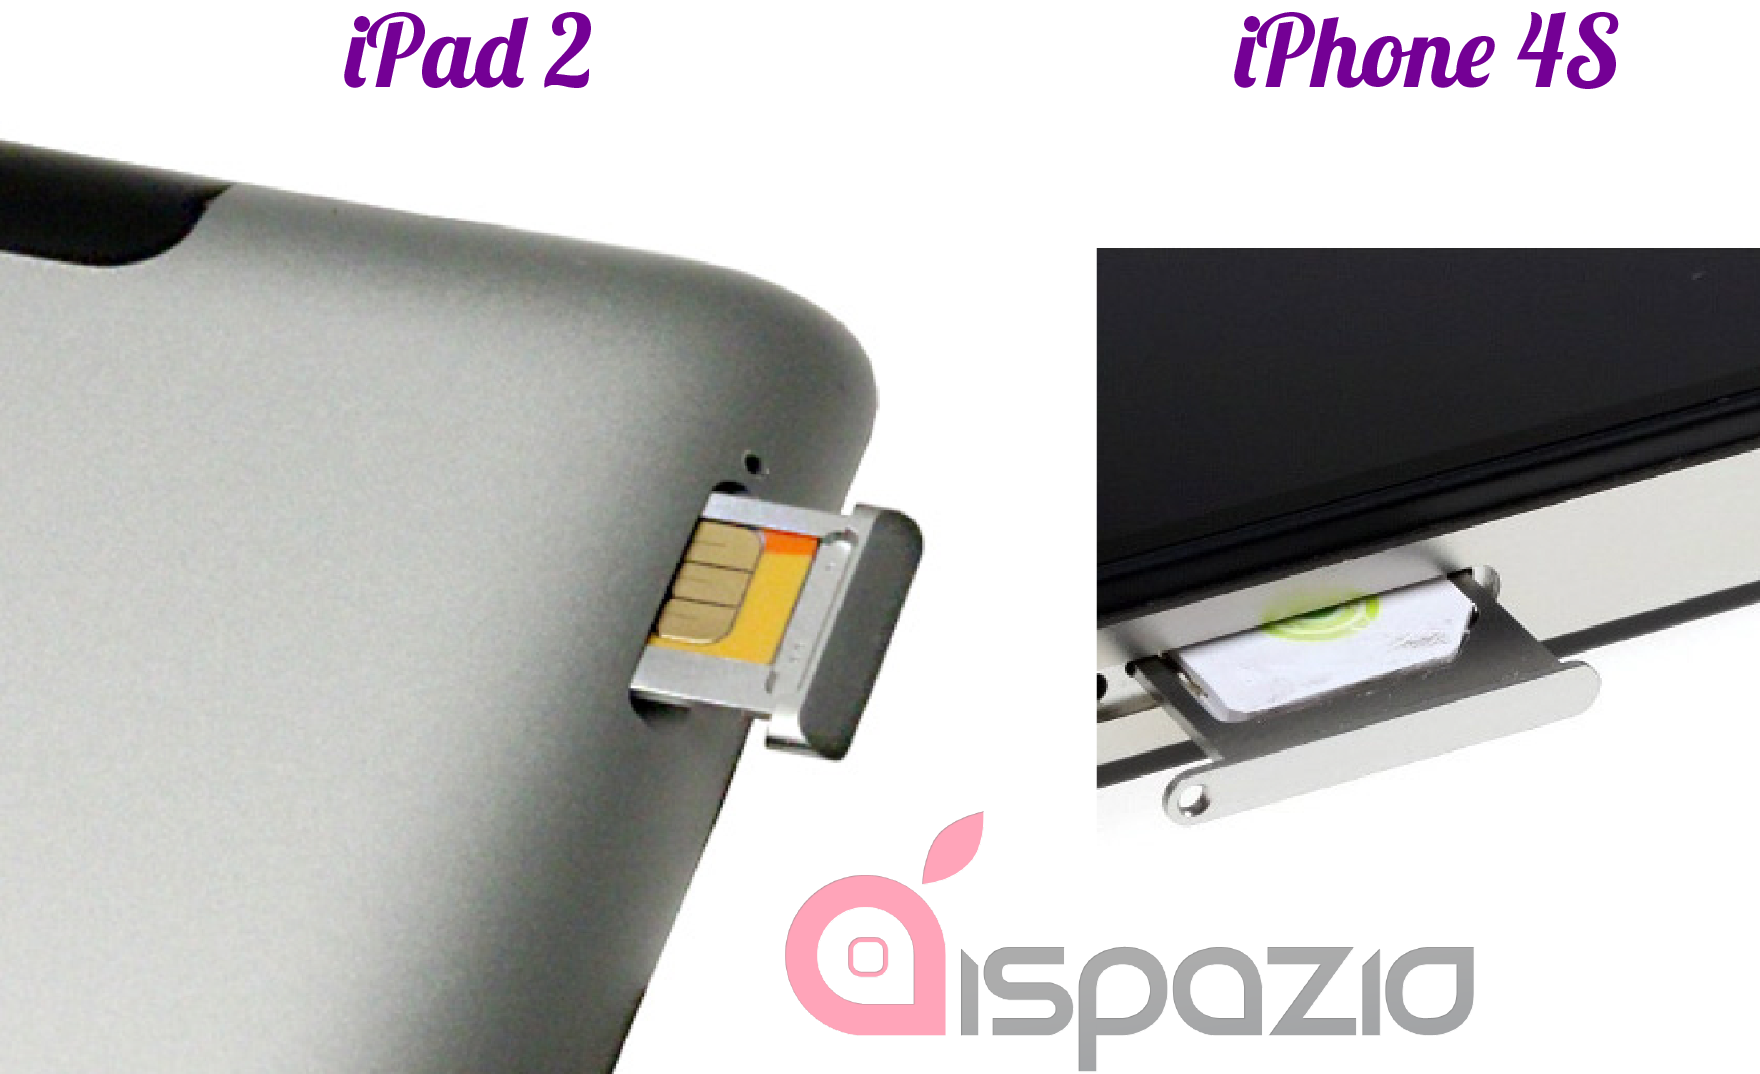 sim ipad 2 vs iphone 4s - ispazio | iSpazio